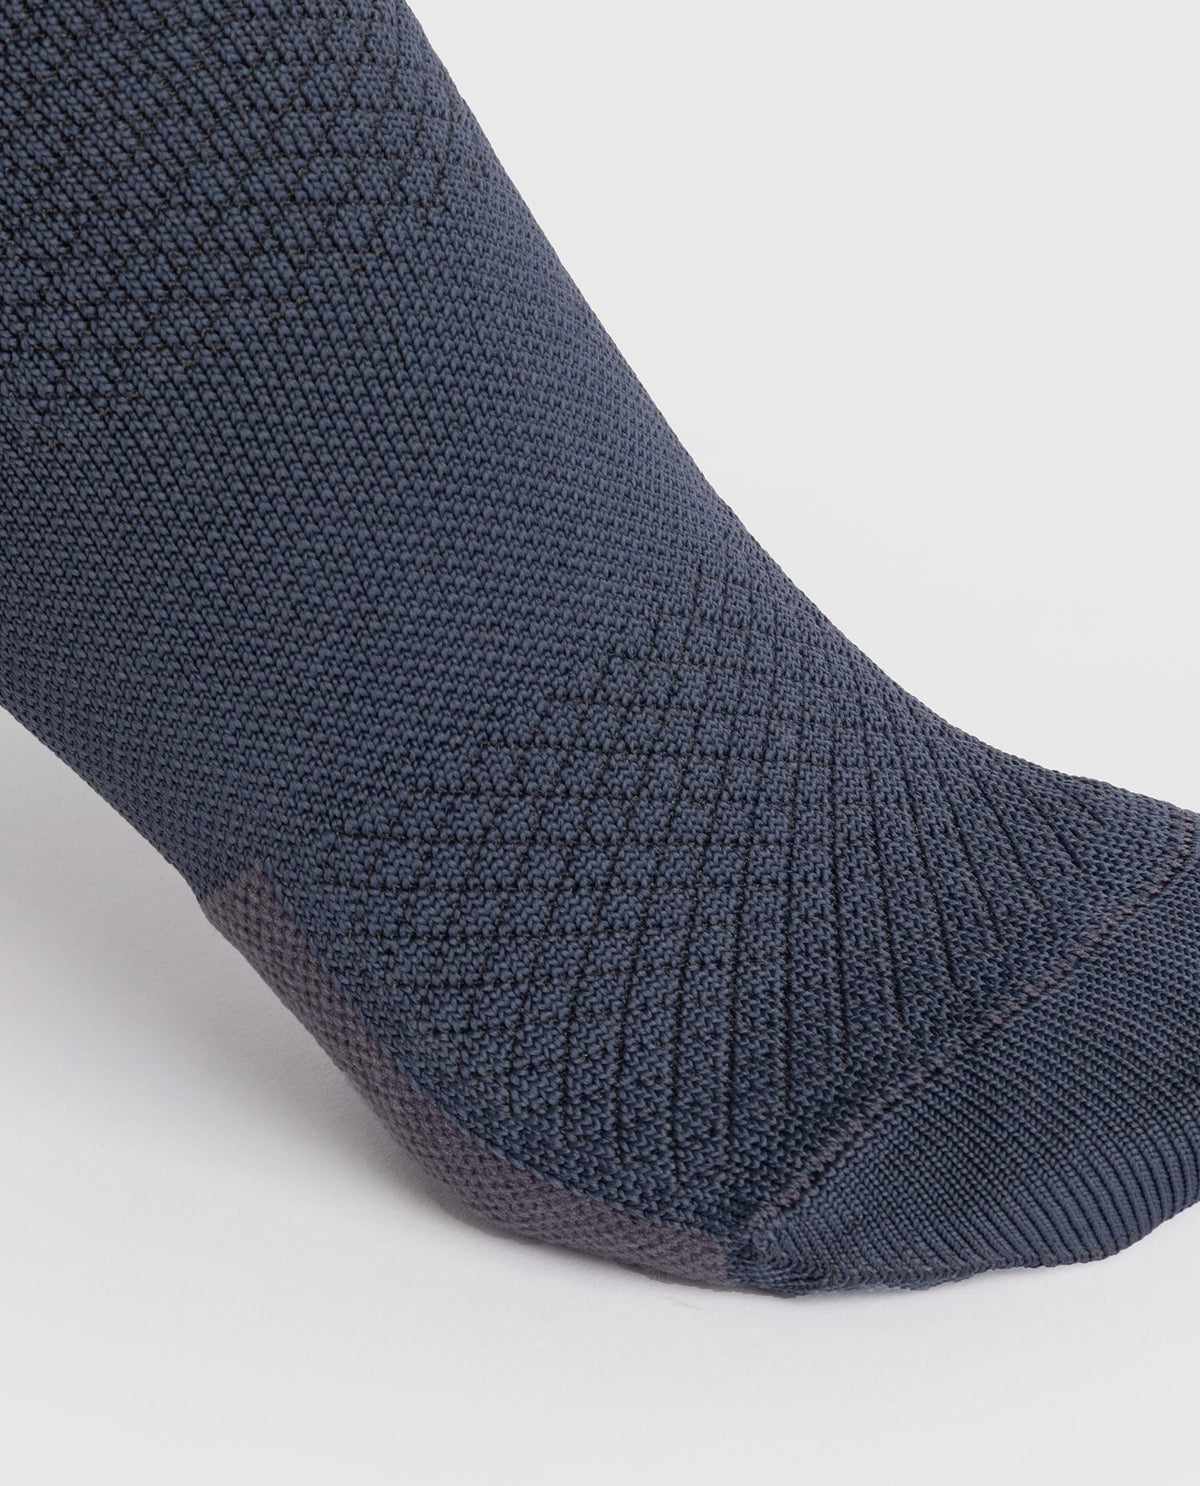 PSN Socks Graphite